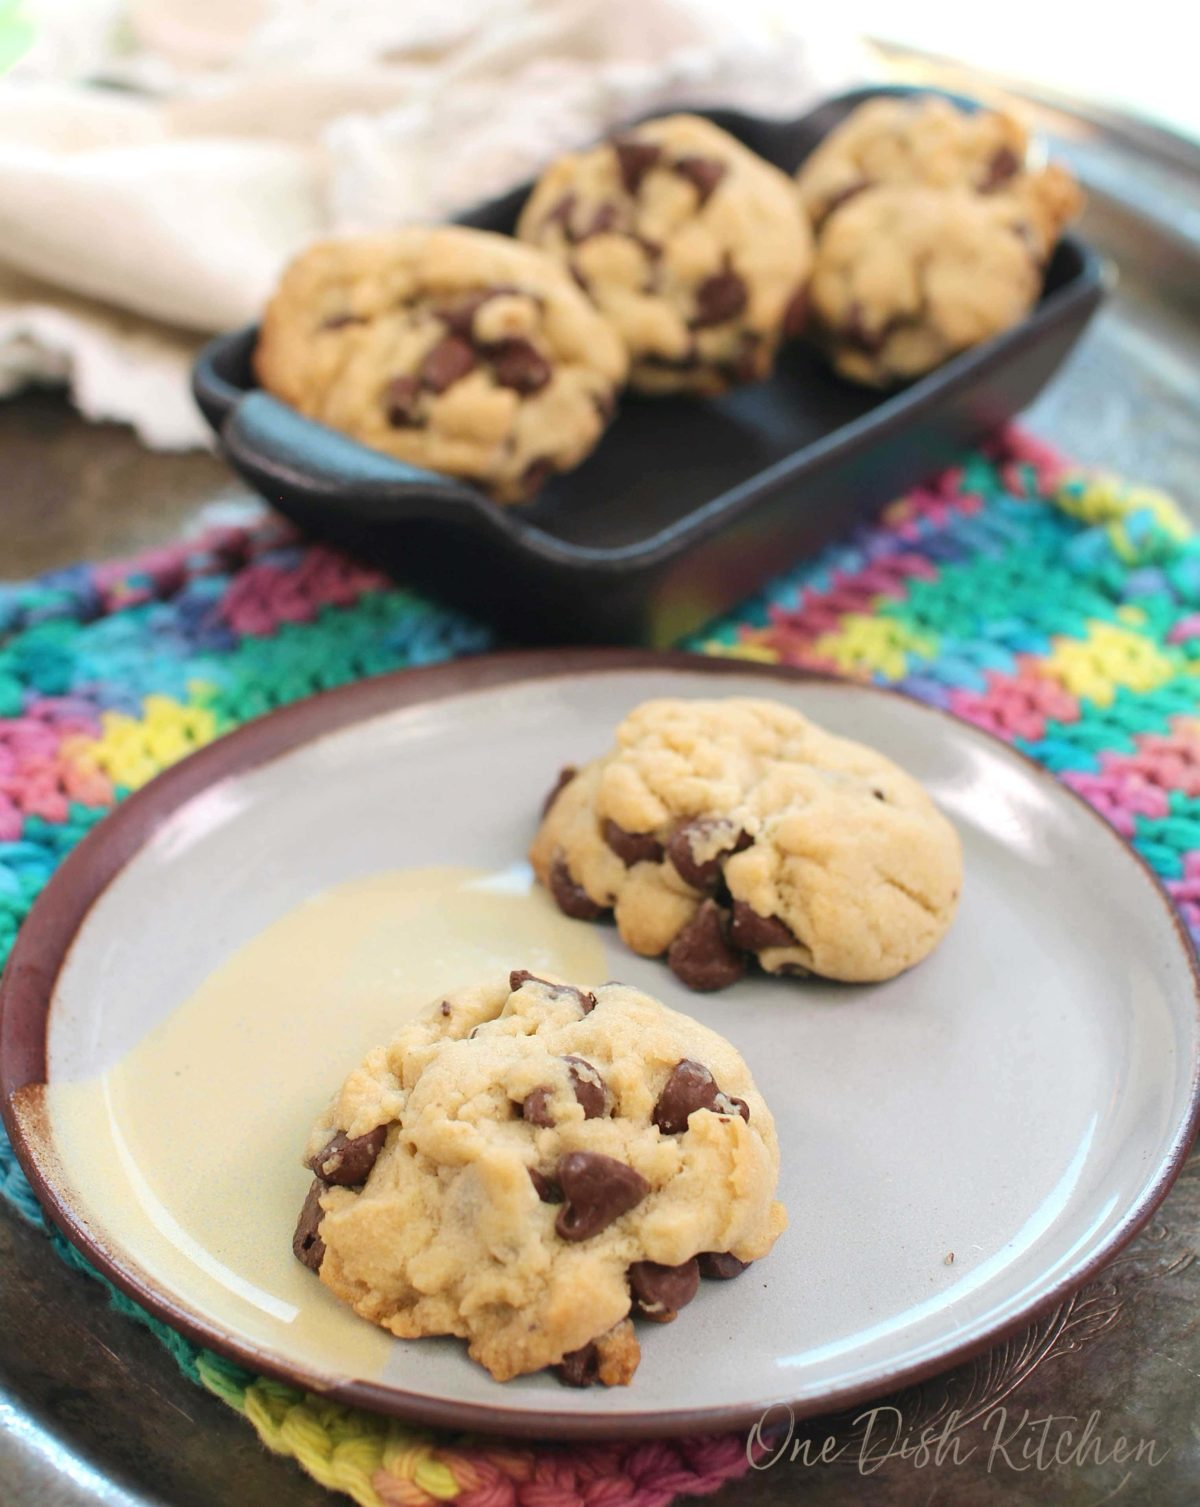 two chocolate chip cookies on a blue plate with a bowl of cookies in the background.